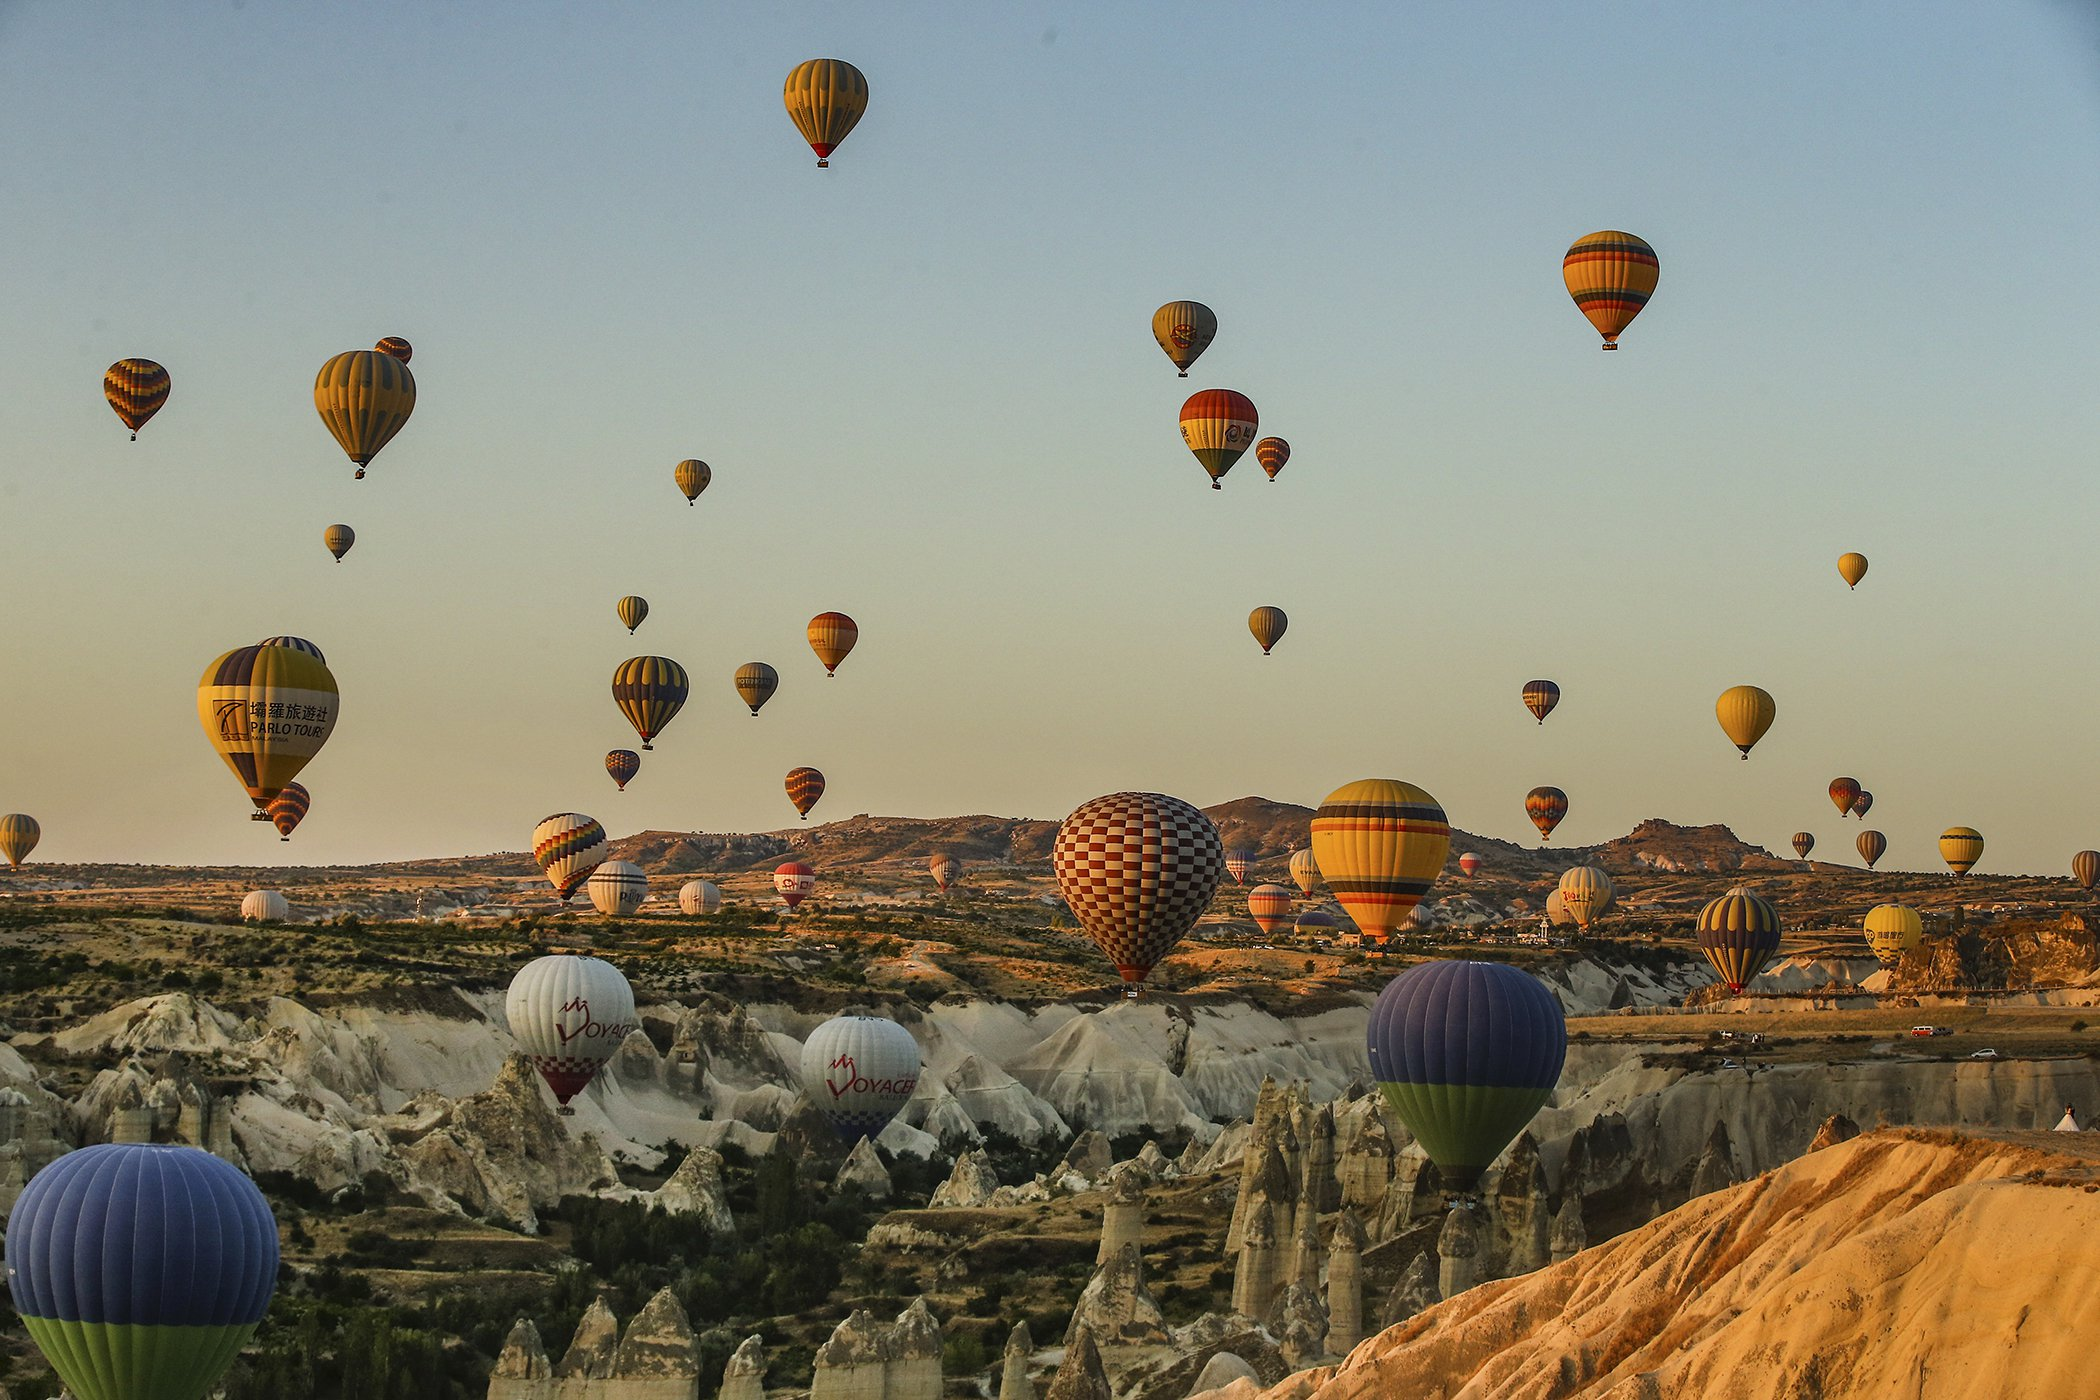 Turkey-Hot-Air-Ballon-Festival.jpg